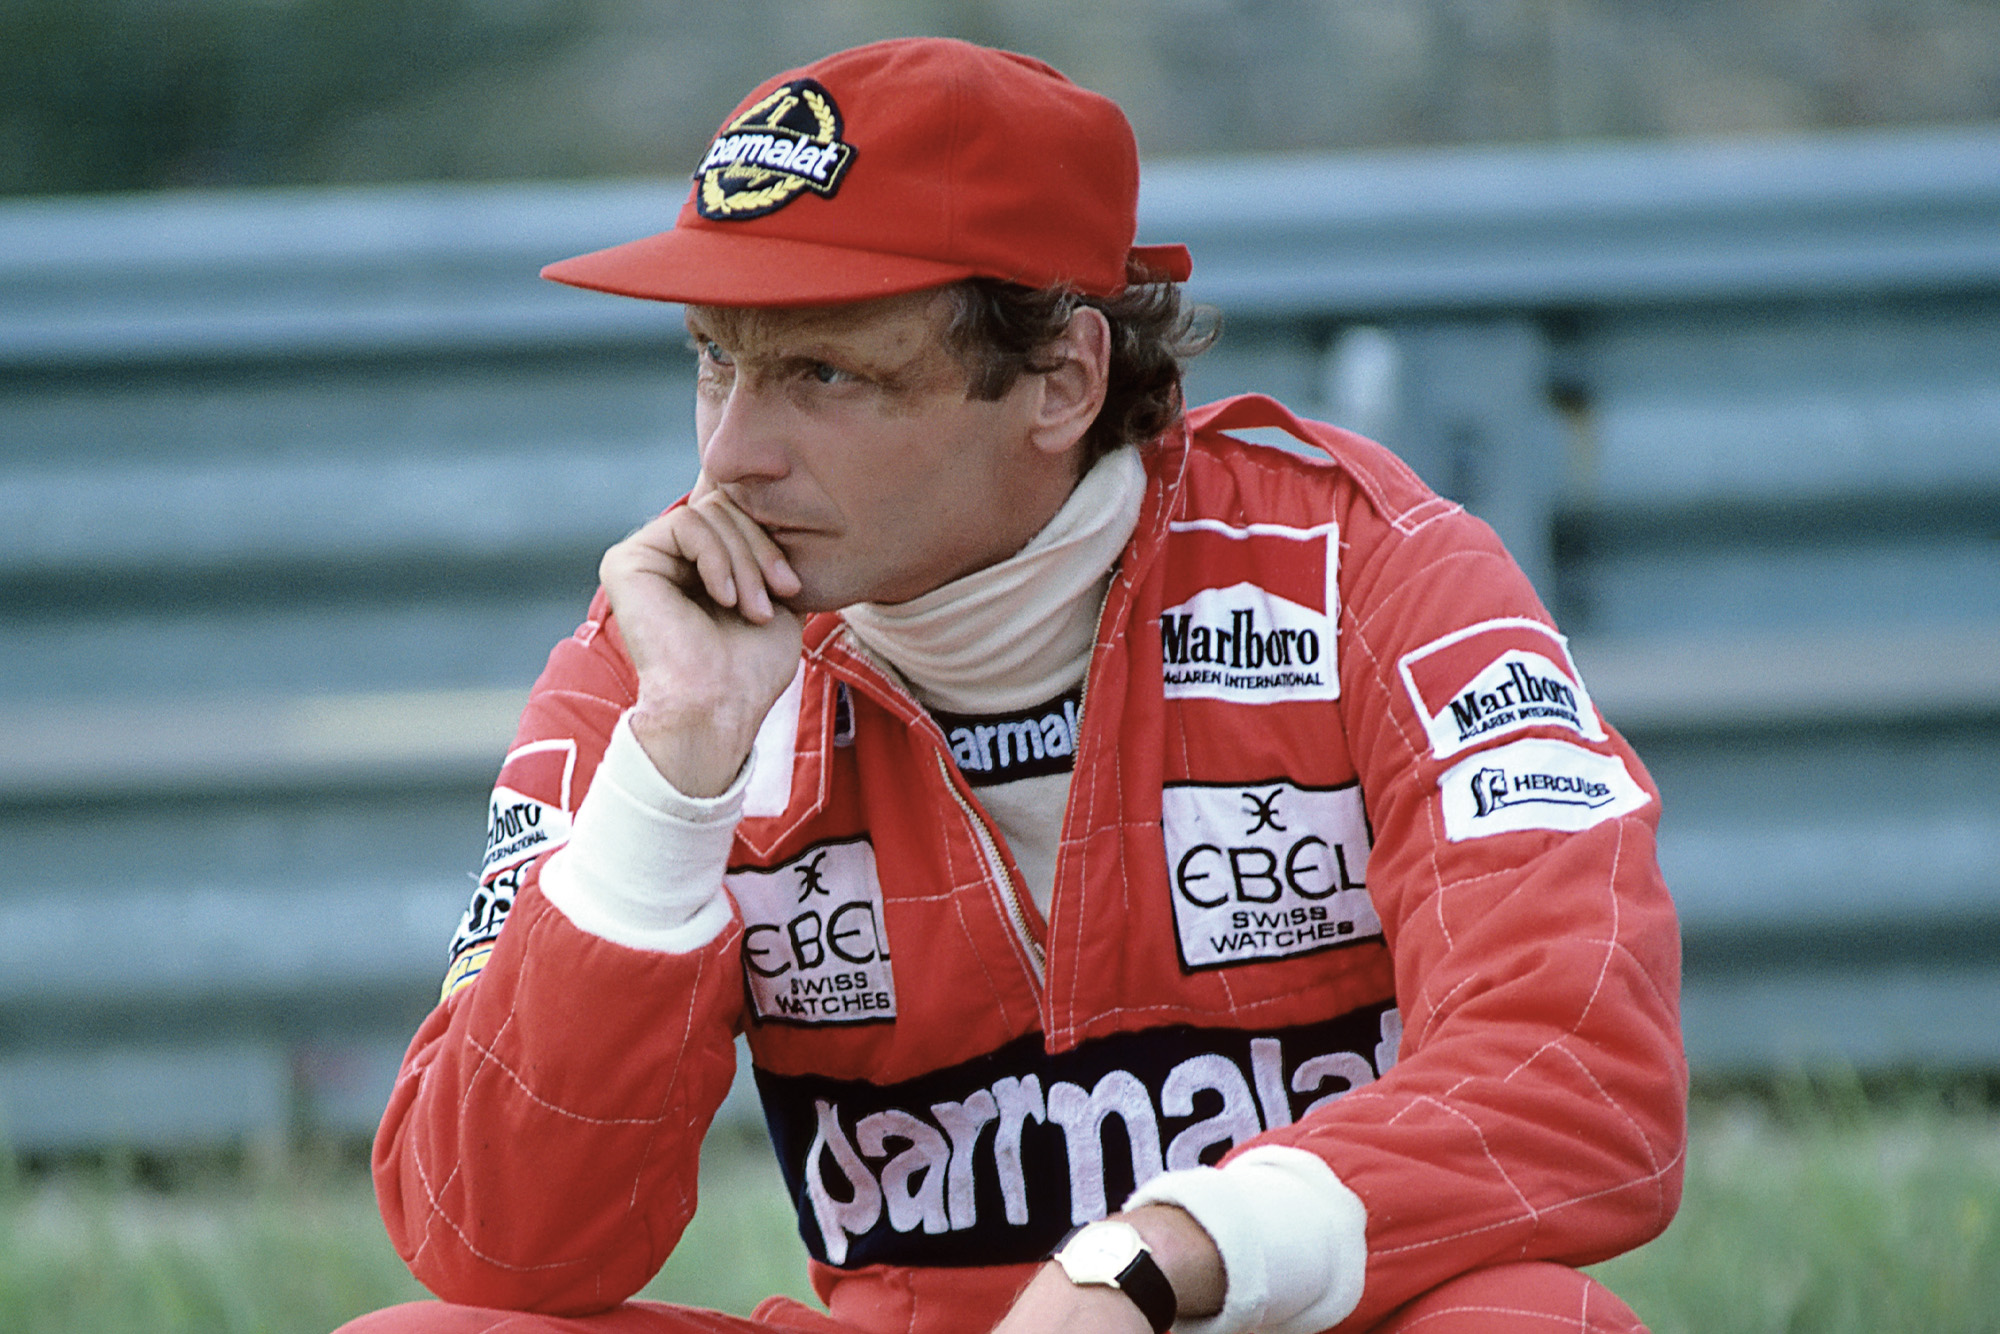 Niki Lauda at the side of the track resting his chin on his hand at the 1982 Dutch Grand Prix